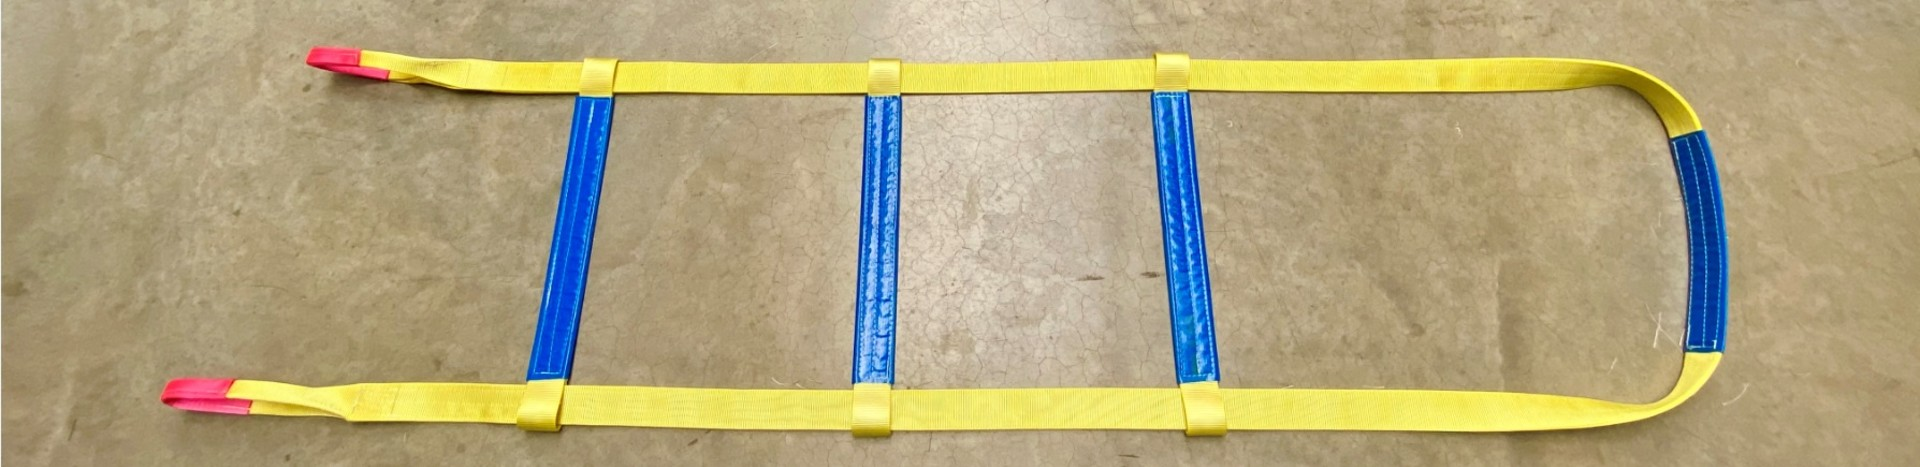 glas lifting web sling